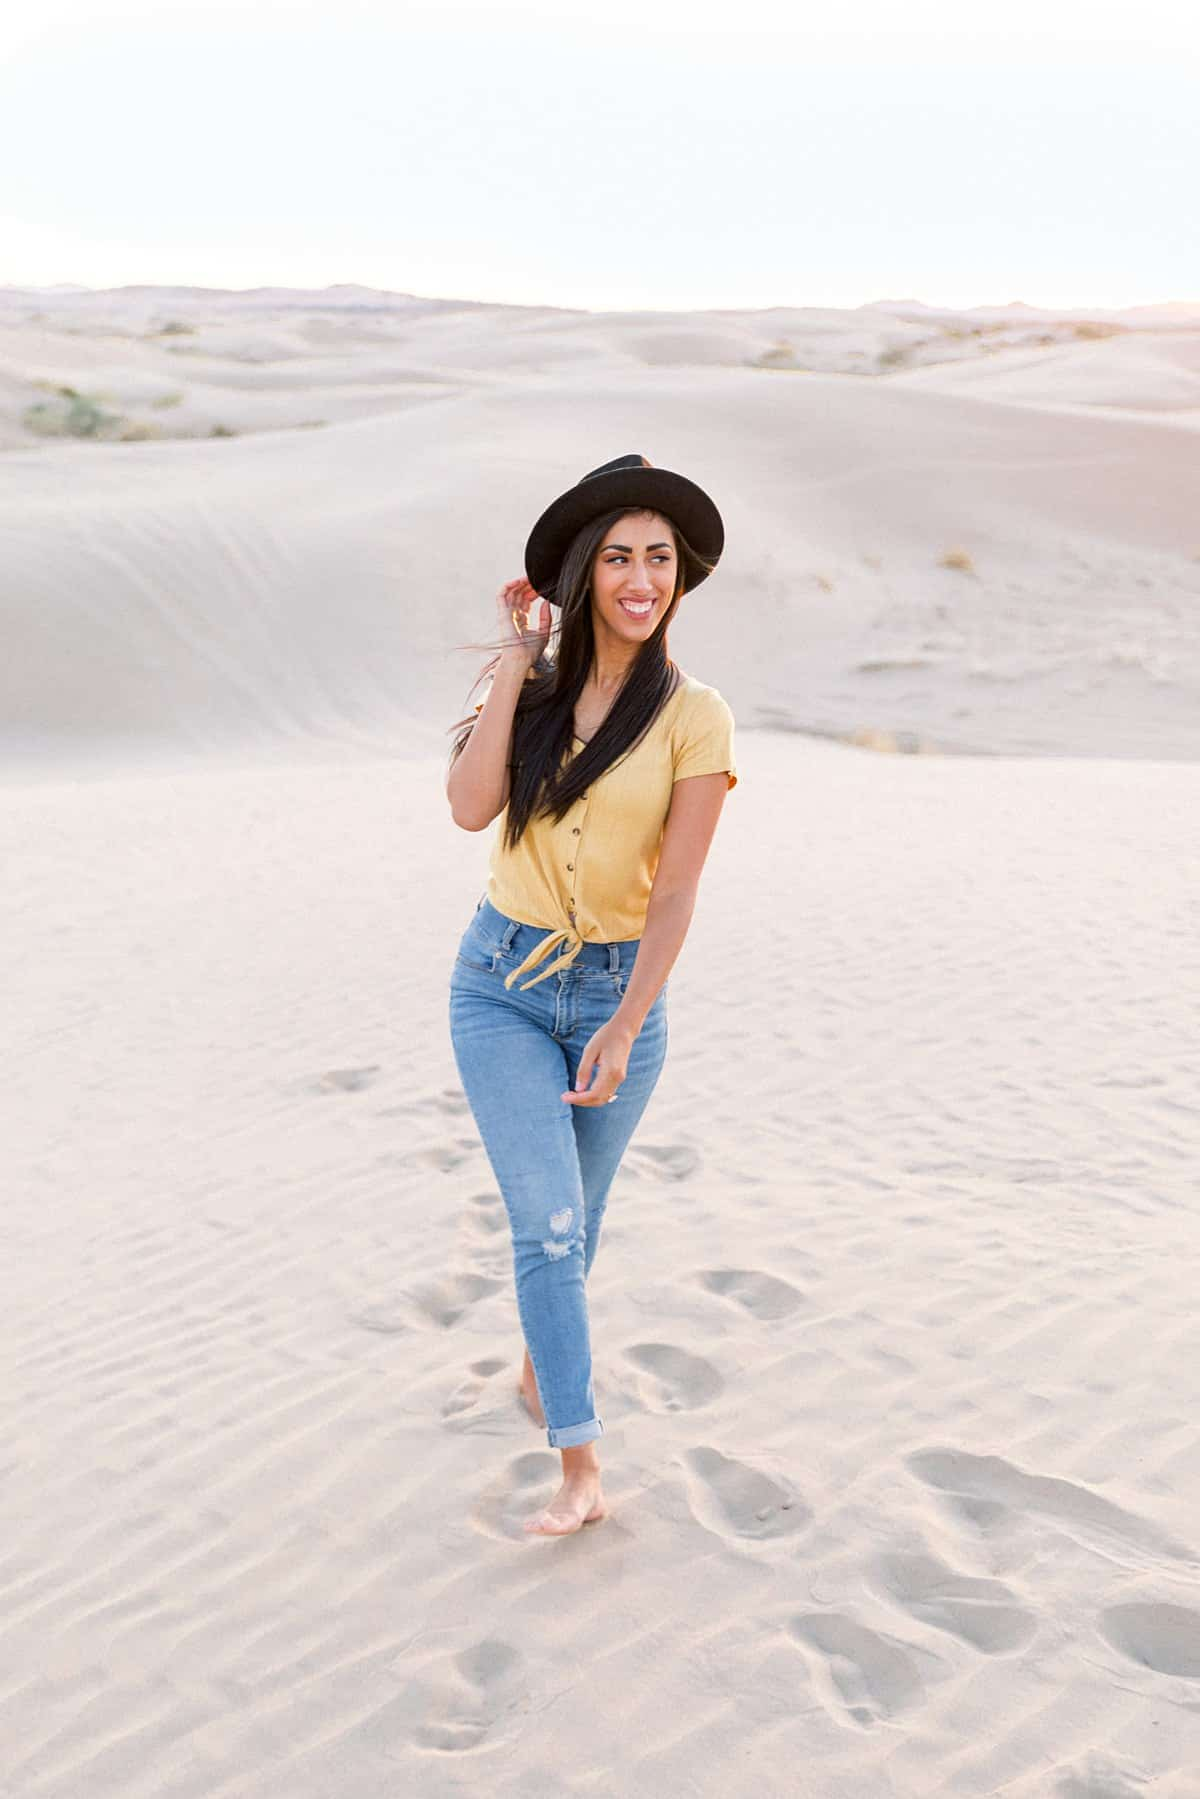 What to wear for engagement pictures, yellow shirt with hat, summer yellow, blue and white outfits, desert photography